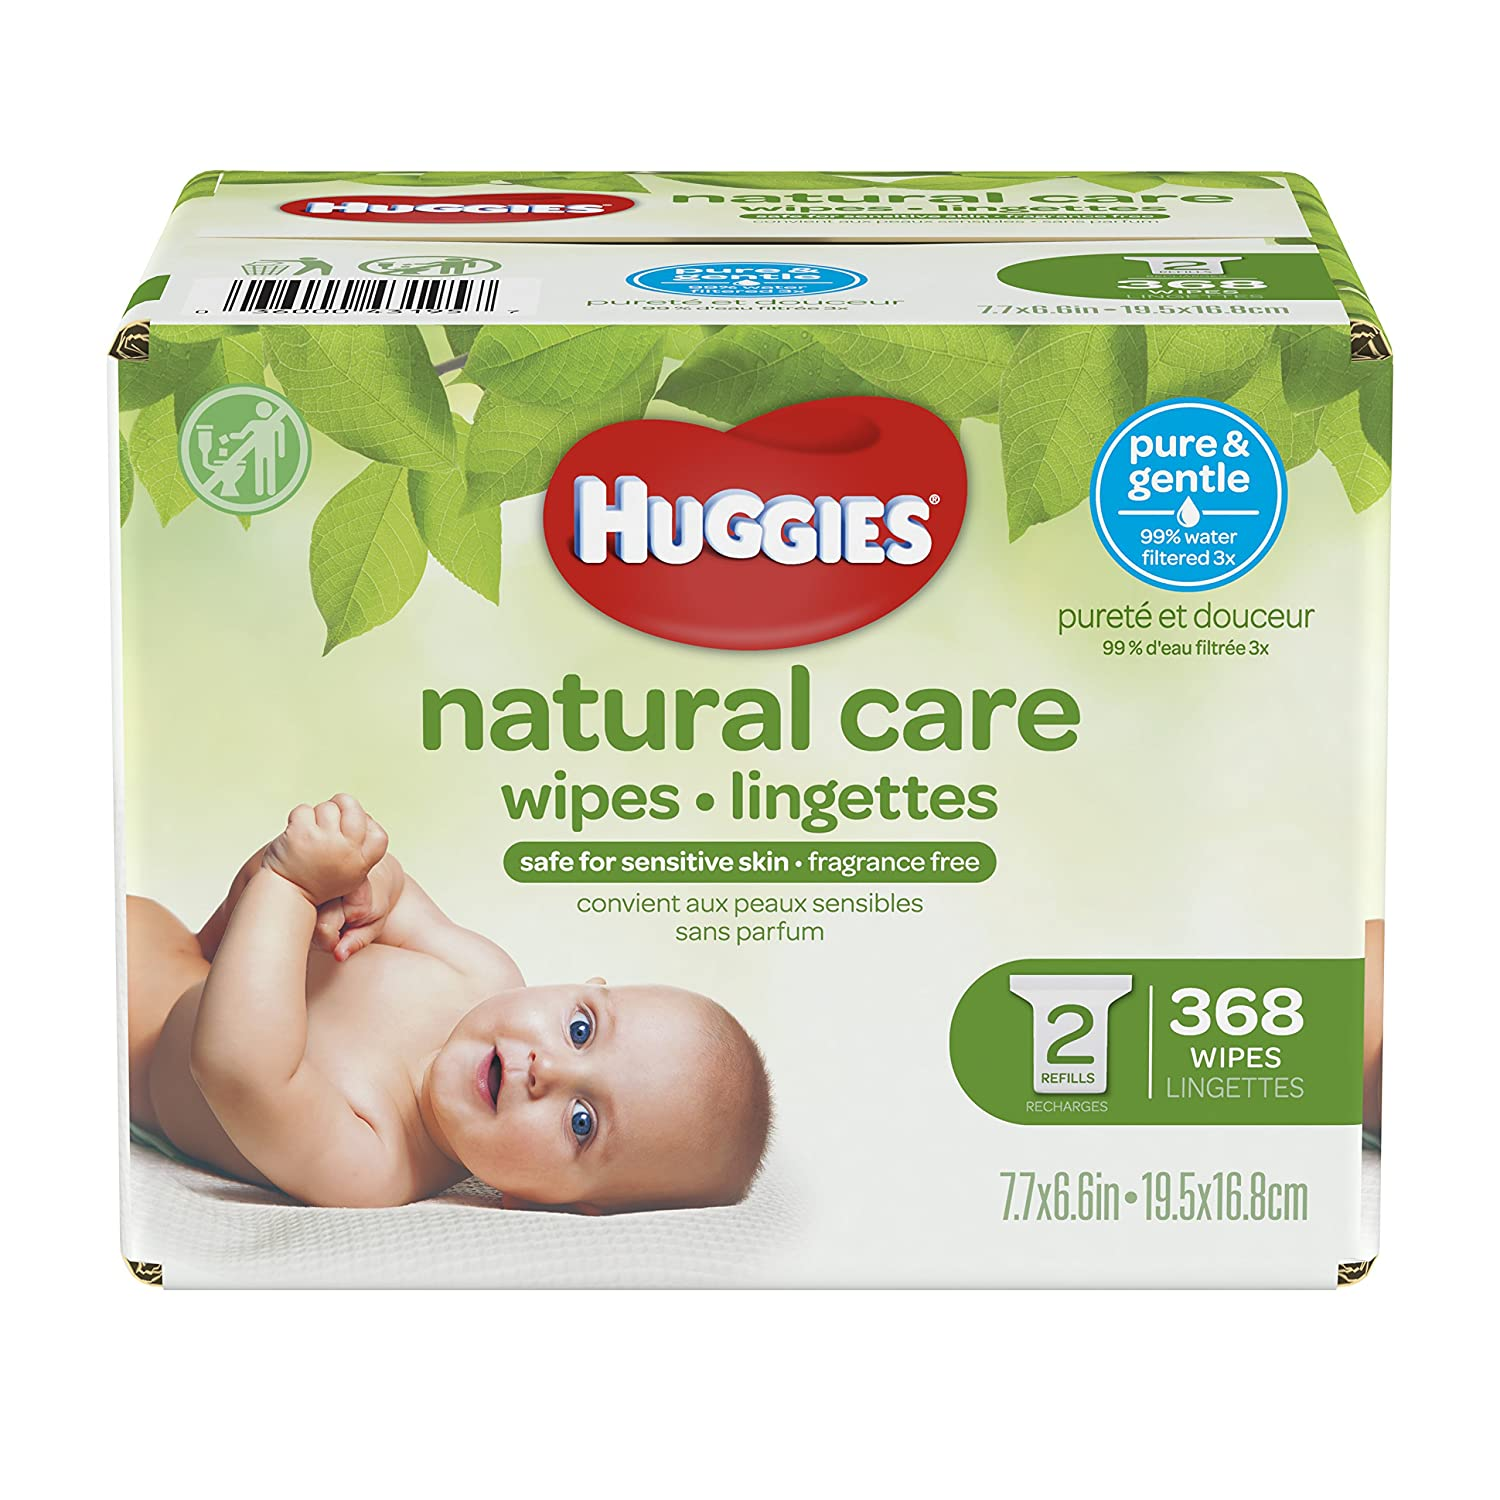 HUGGIES NATURAL CARE Fragrance-Free & Hypoallergenic Baby Wipes (2X Refill Packs, 368 Count) Kimberly-Clark Corp. CA 43195